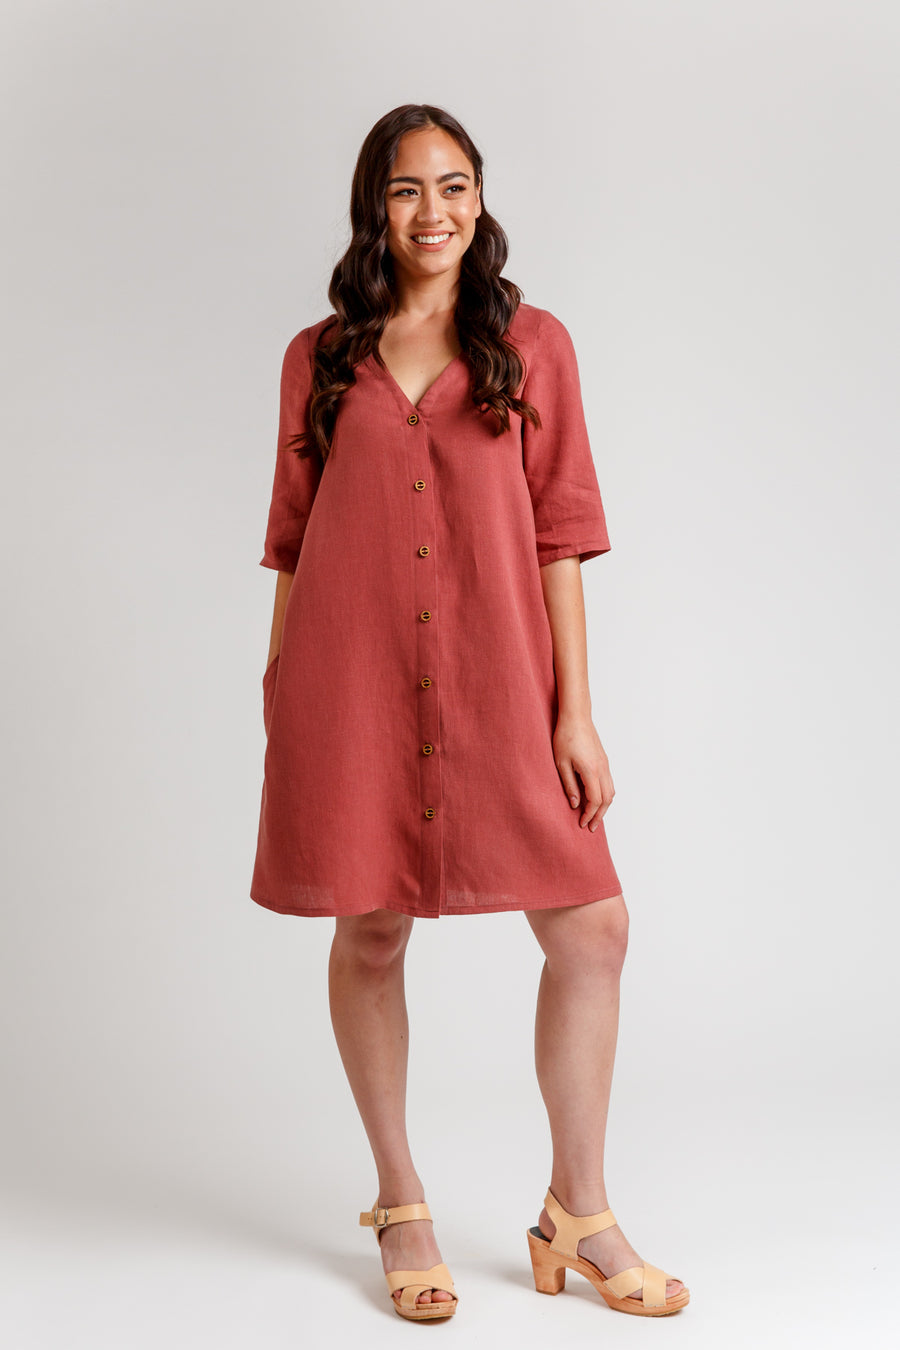 Megan Nielsen - Darling Ranges Dress and Blouse